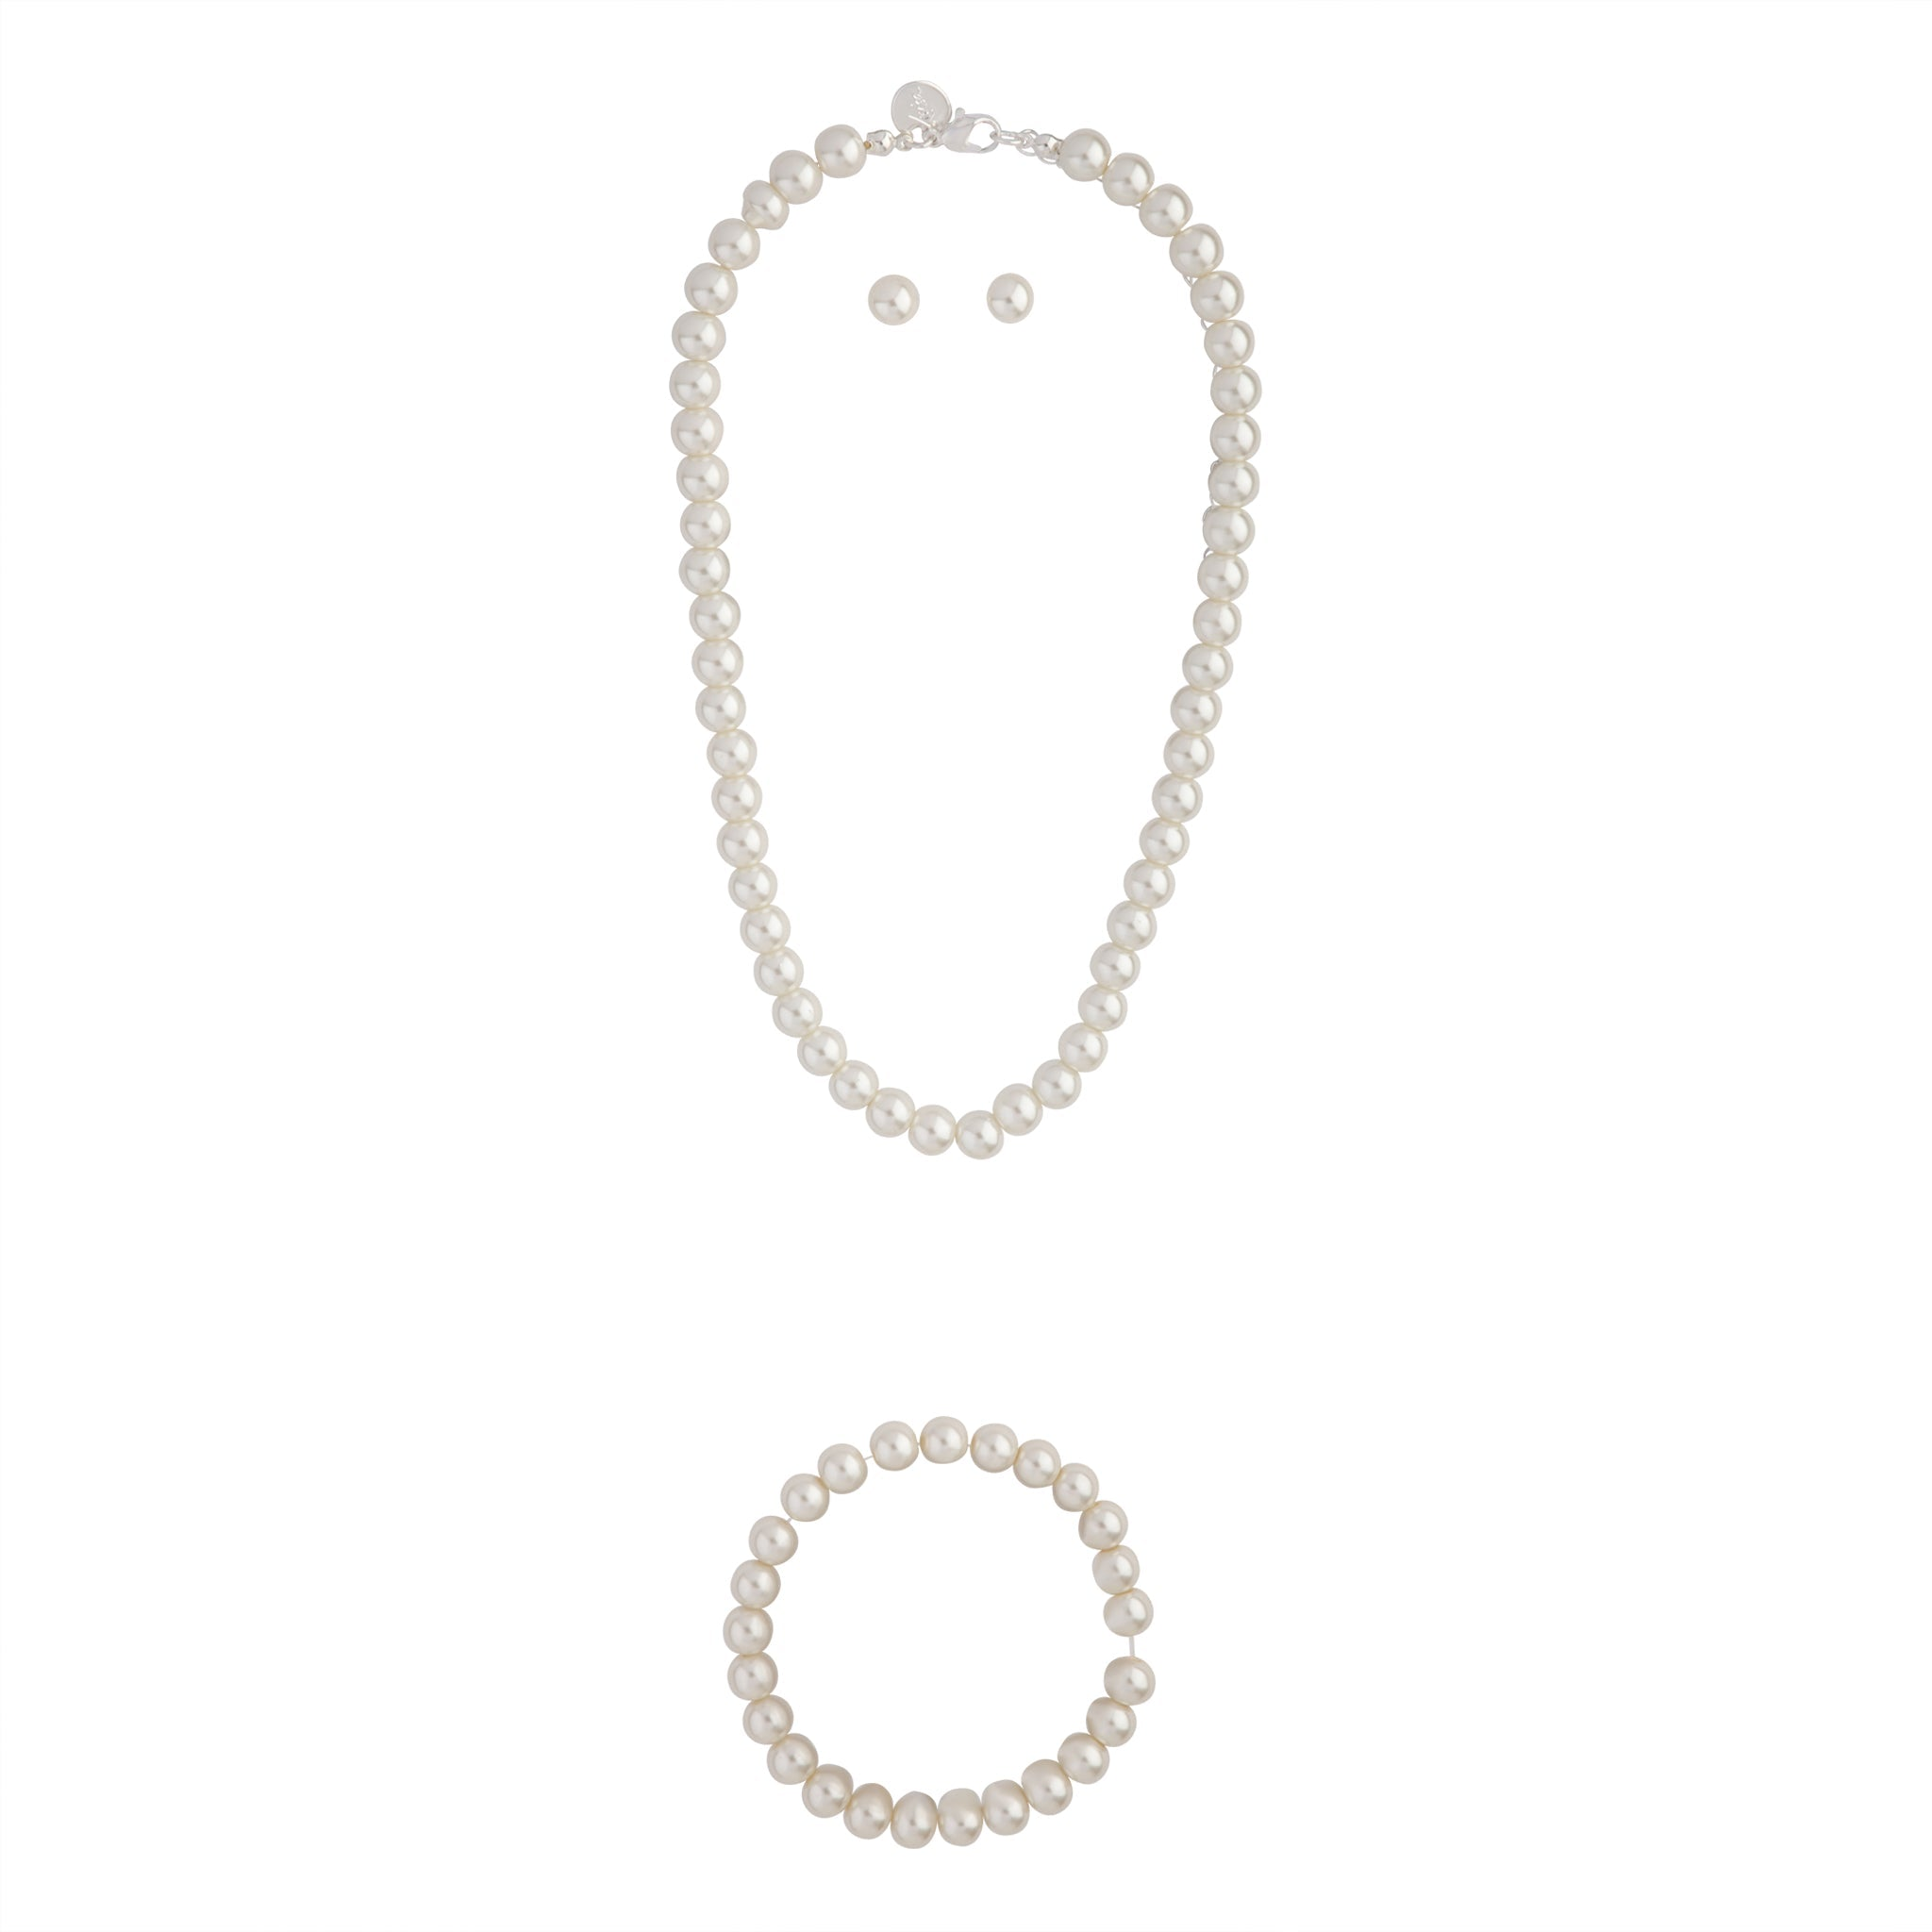 Classic Pearl Necklace Bracelet Earring Set